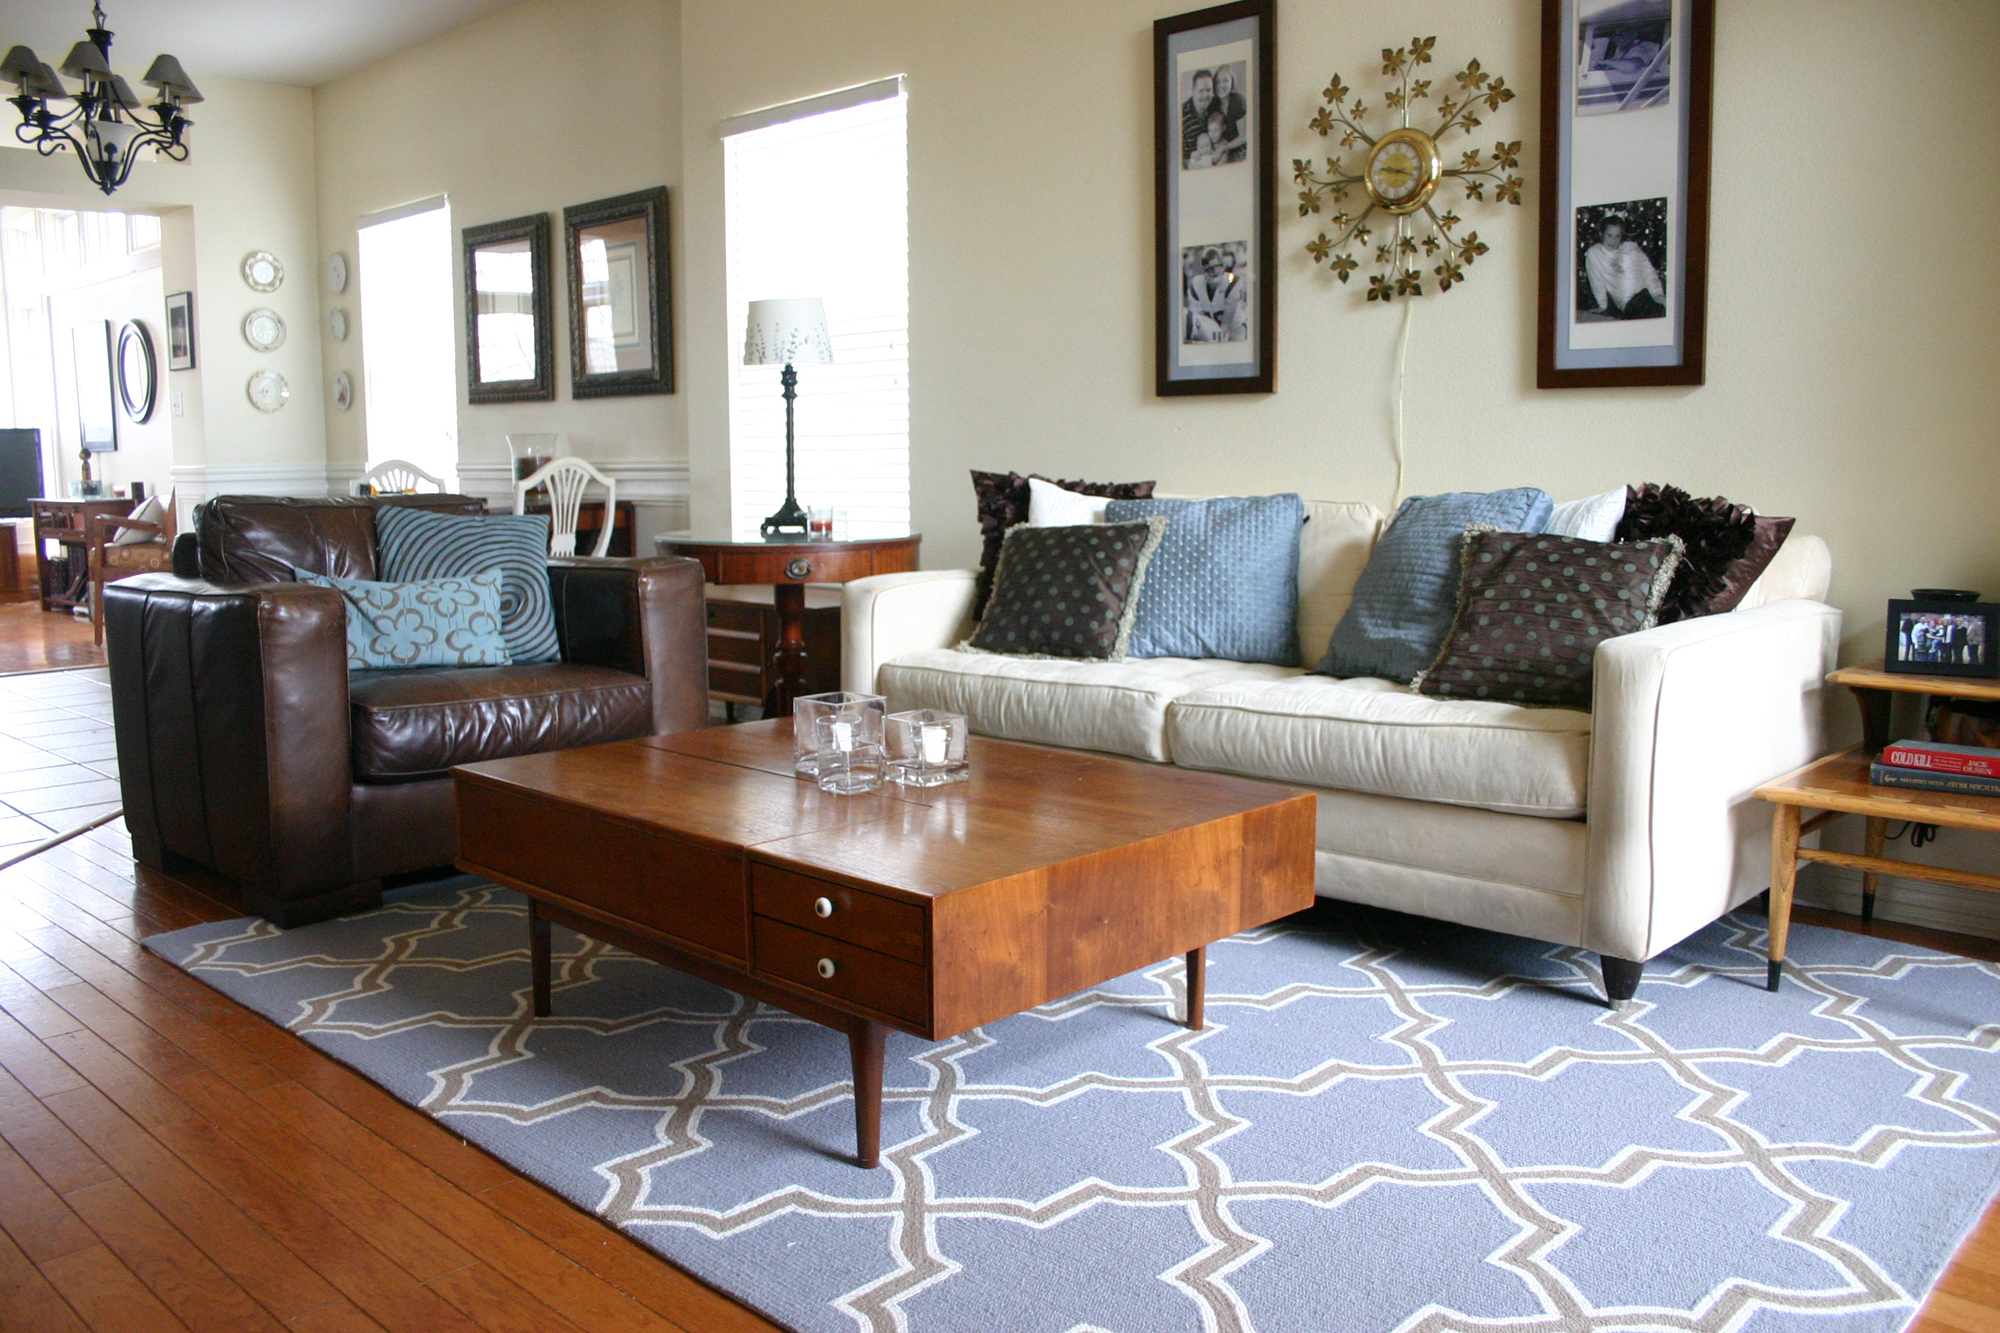 Proper sizing for a living room rug